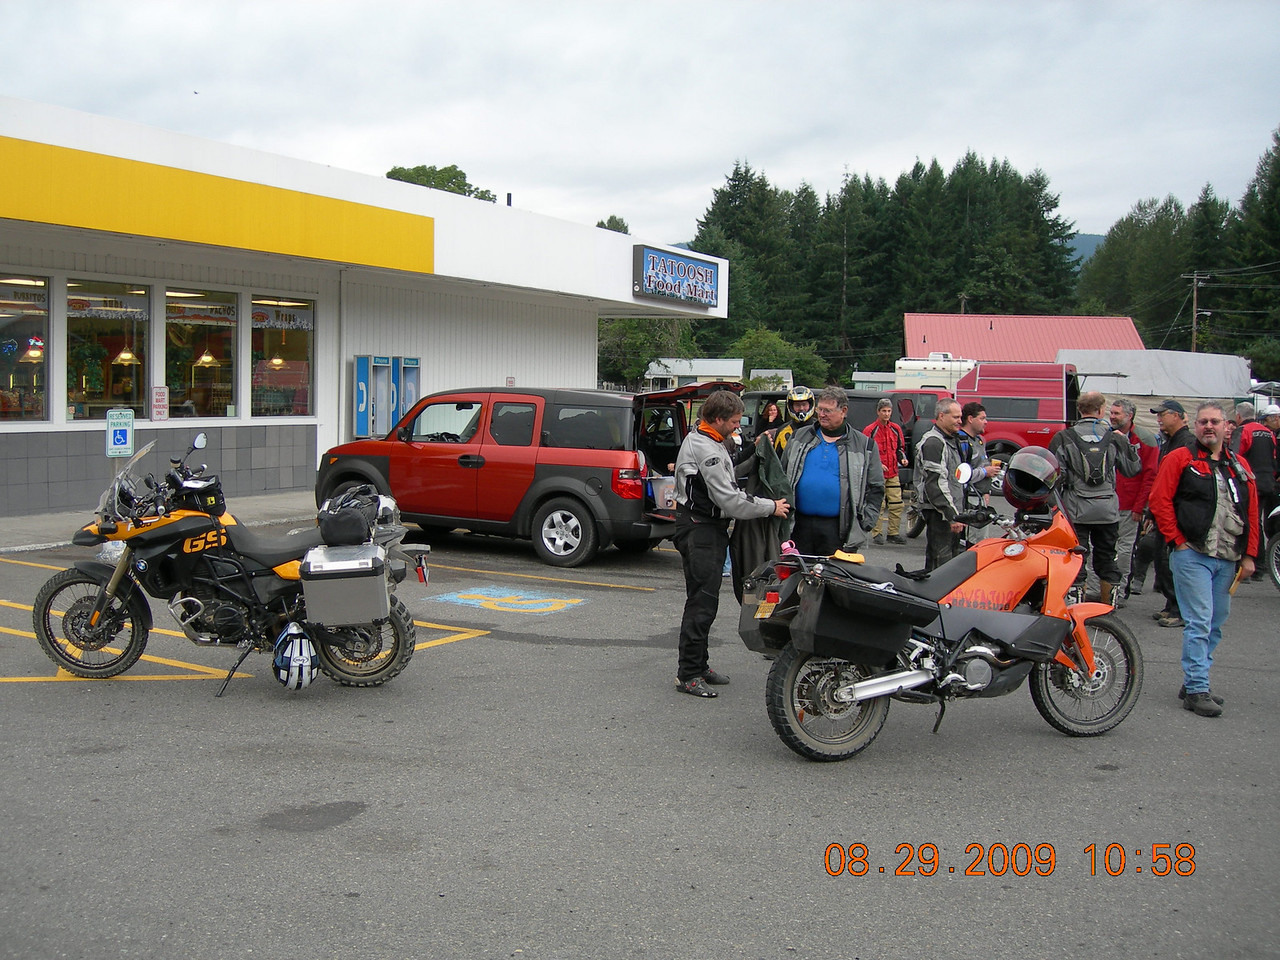 The only BMW F800GS at the event ridden by the GM of Ride West BMW.  It was very nicely setup wtih all the farkles.